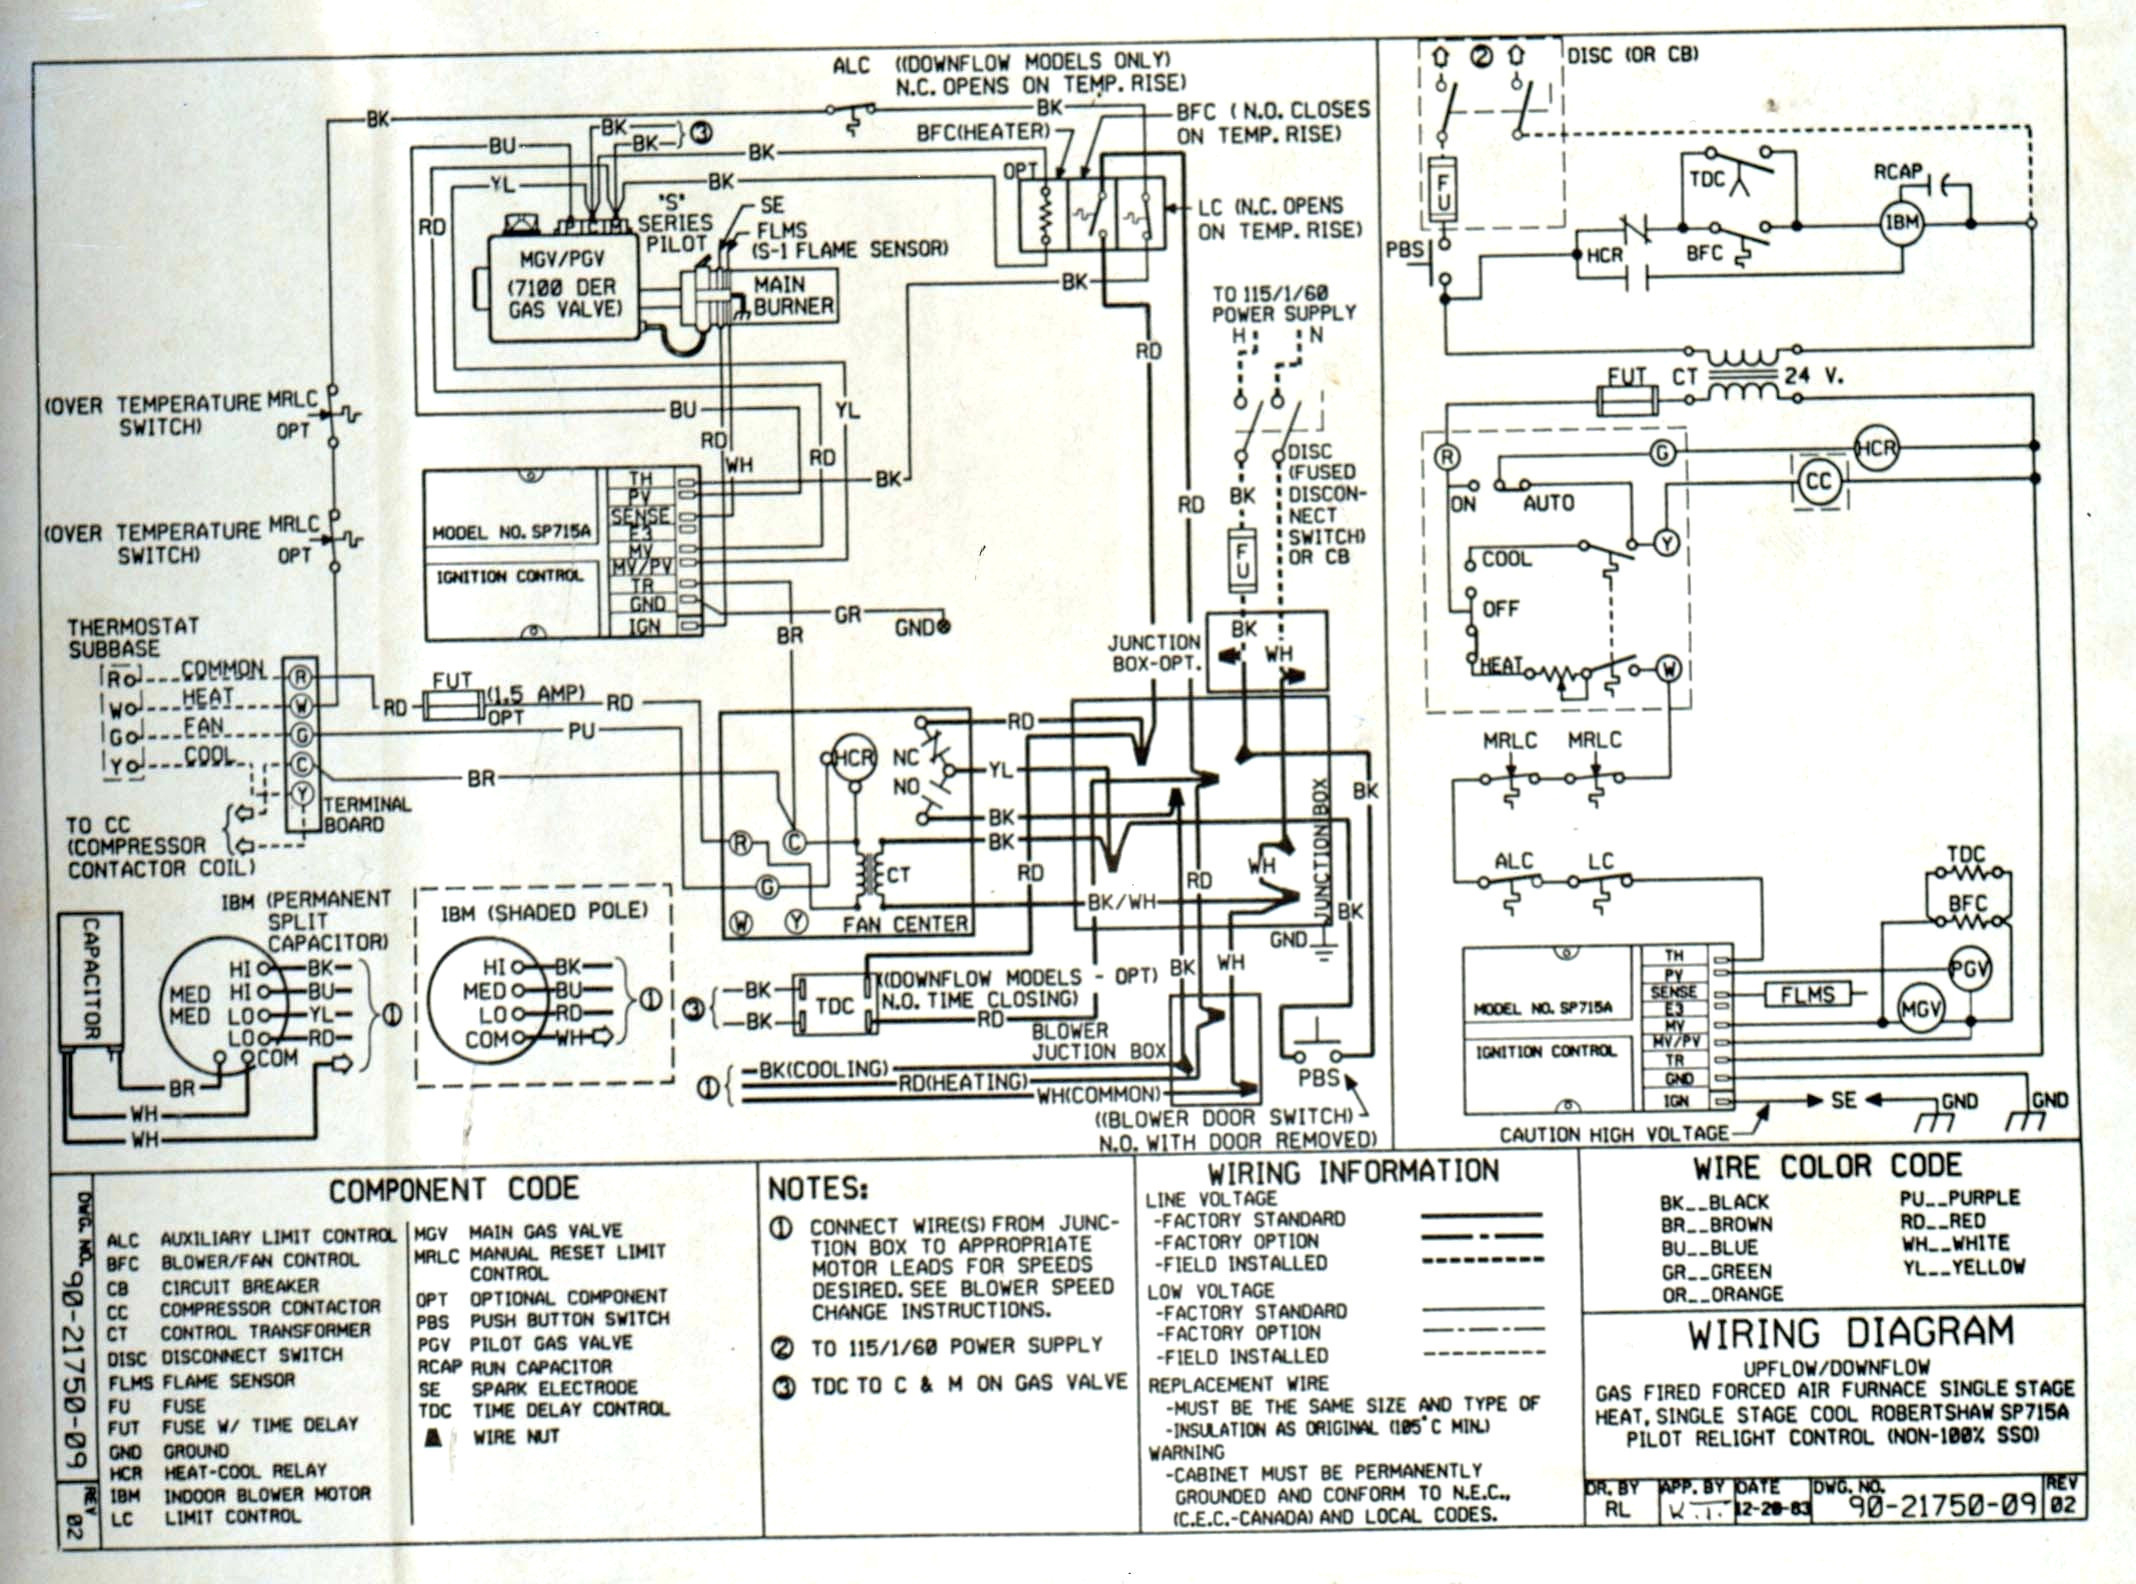 ... luxaire heat pump wiring diagram wiring diagrams u2022 rh autonomia co  Heat Pump Thermostat Wiring for